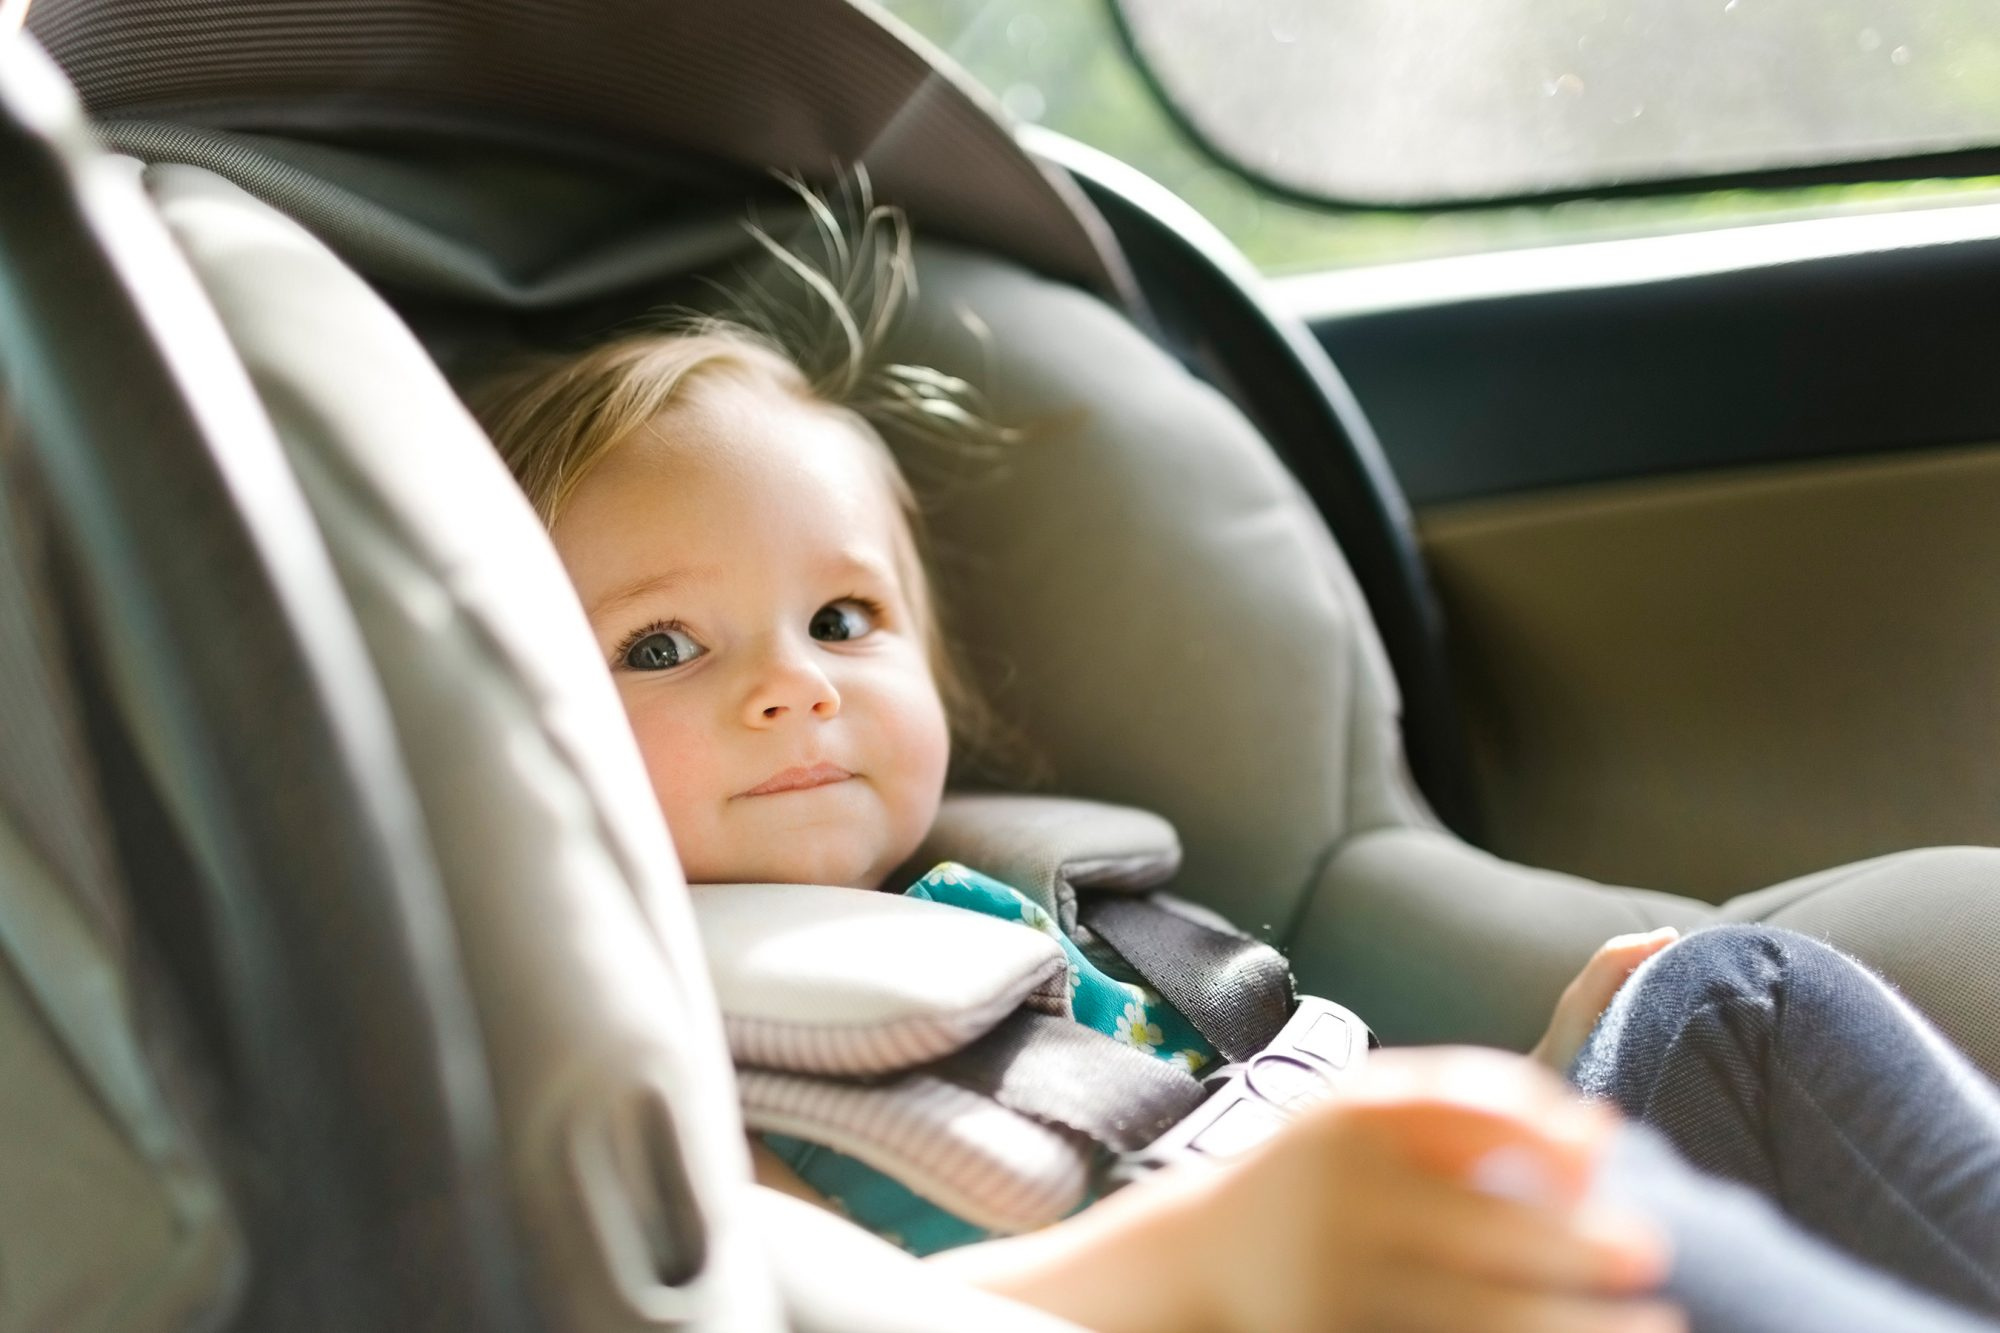 Walmart Offers Customers Gift Cards in Exchange for Recycling Car Seats - How to Trade Yours In